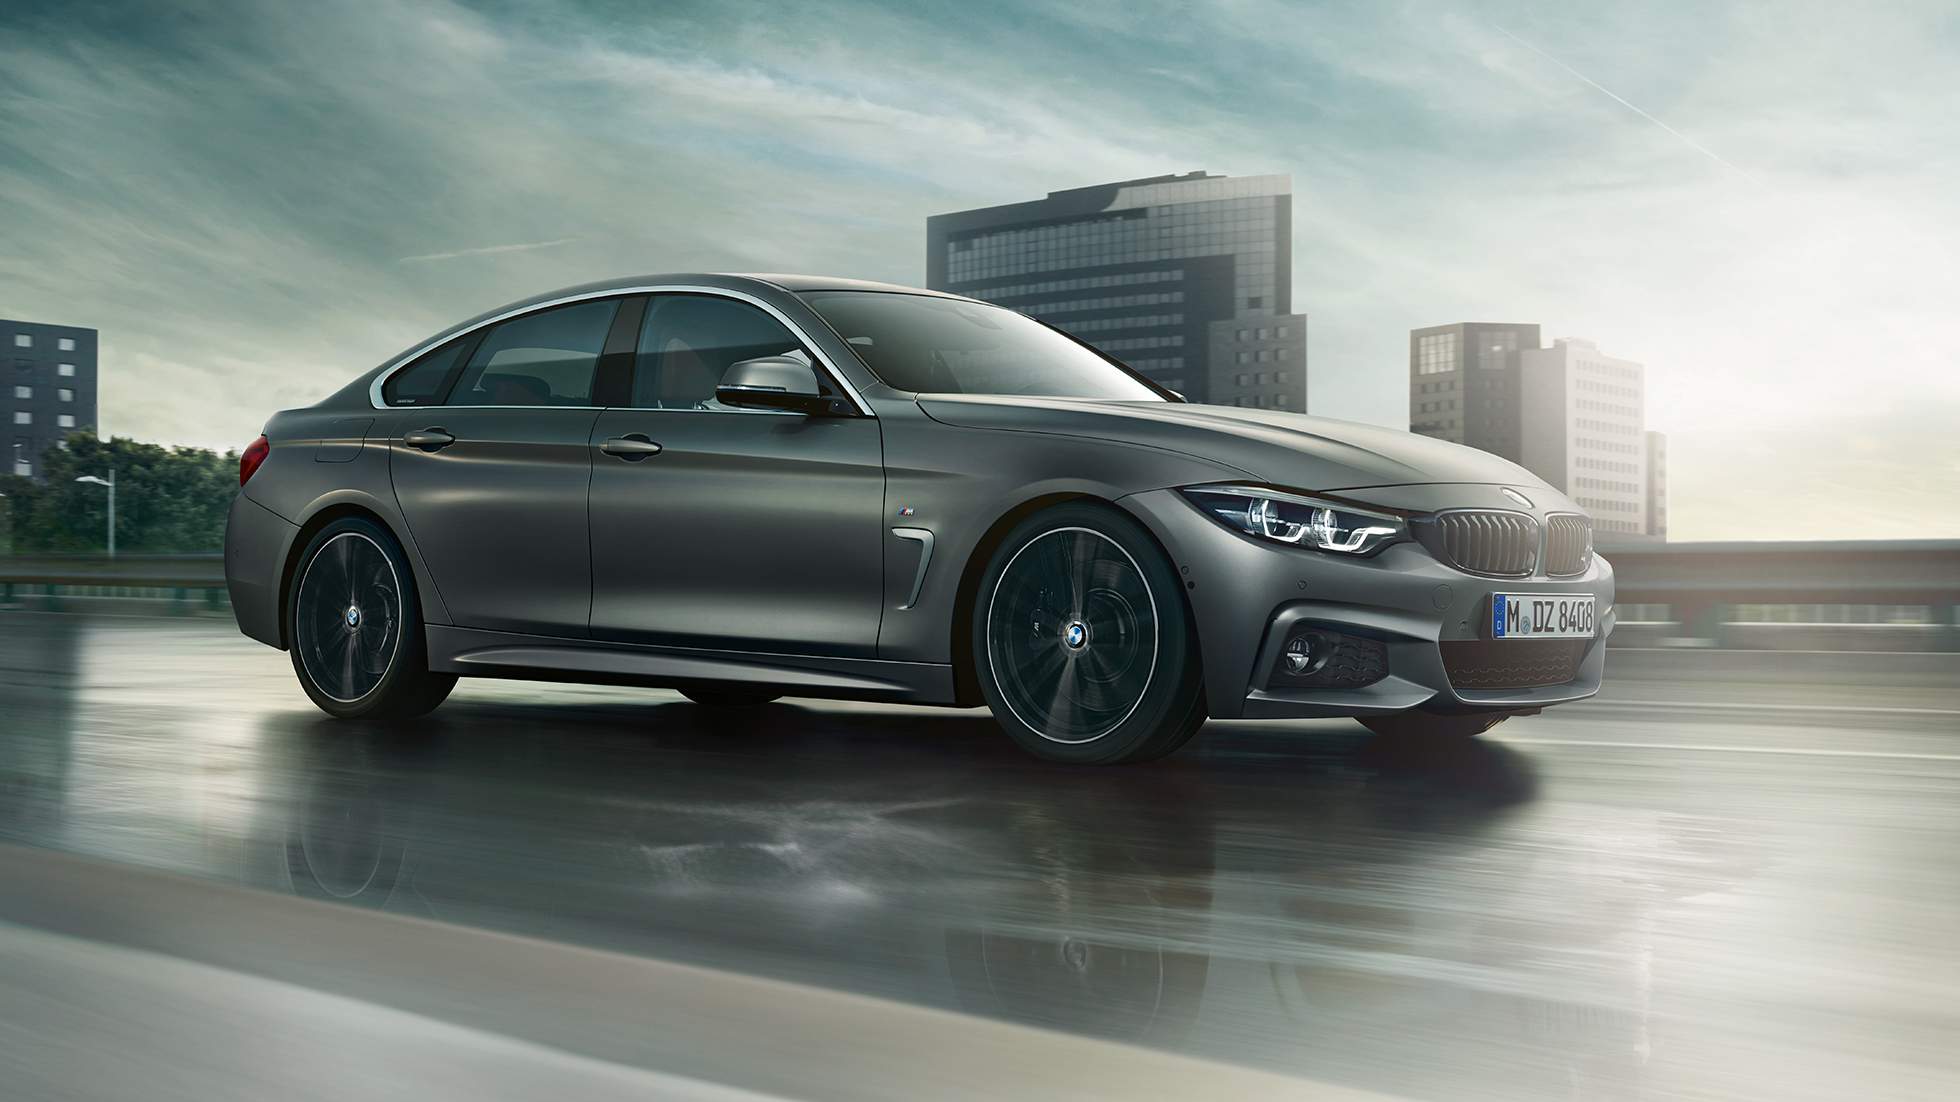 BMW 4 Series Gran Coupé, lateral driving shot